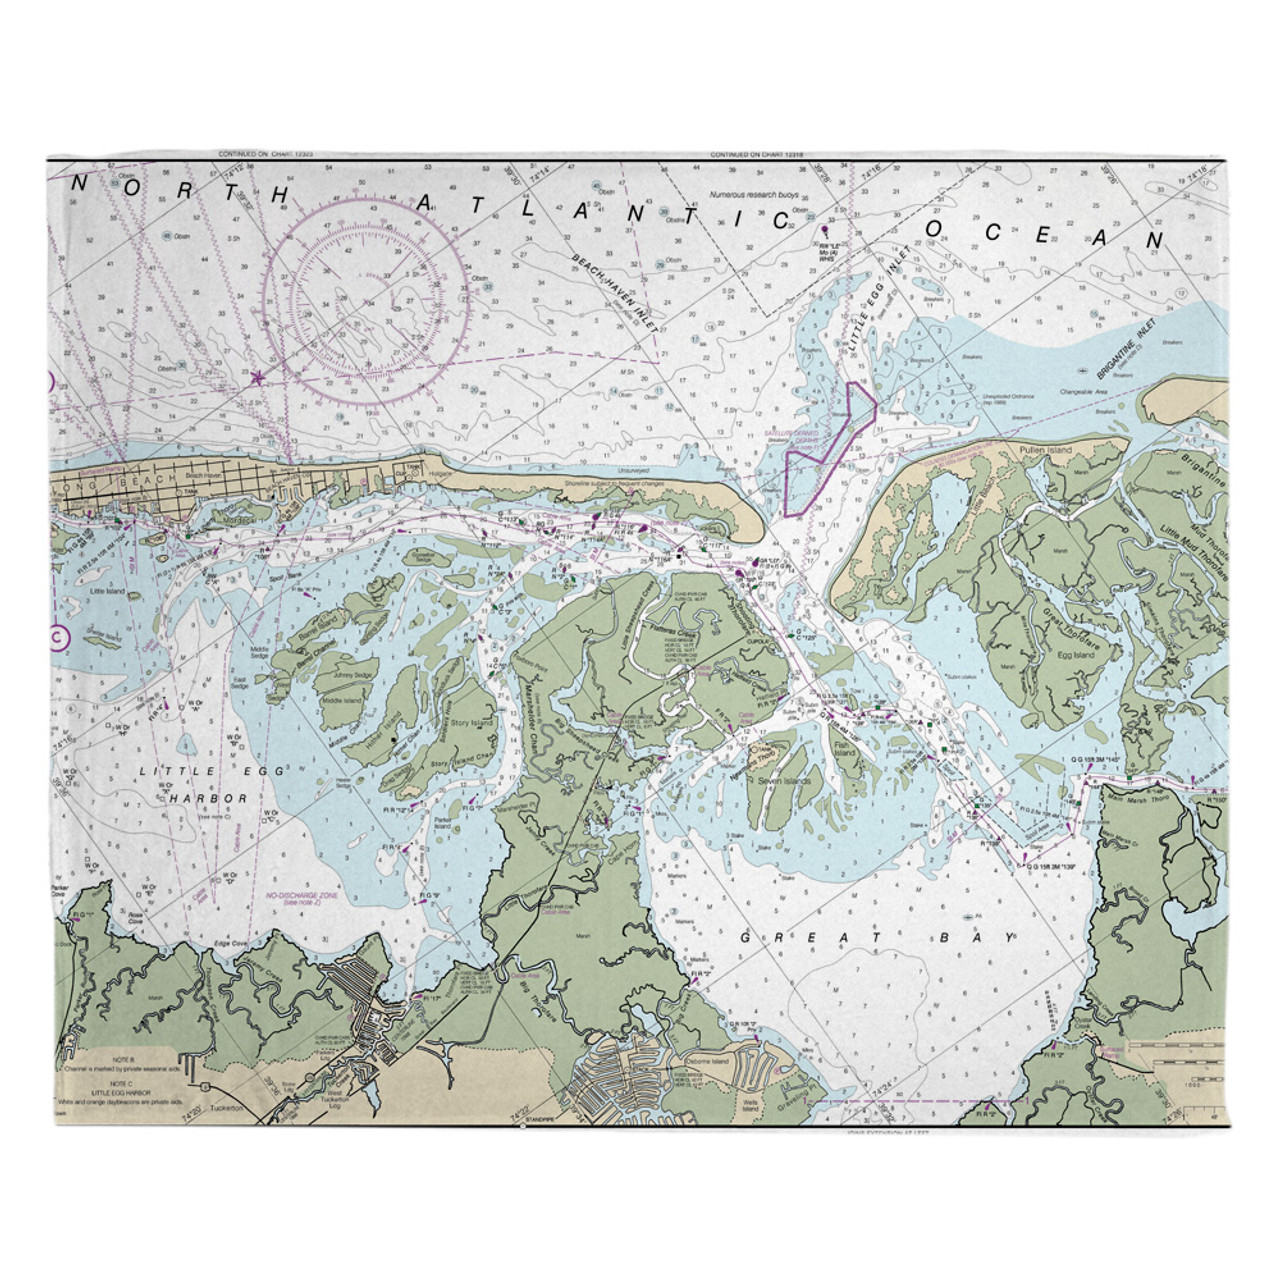 Nautical Chart Fleece Throw Blanket, States from N to W